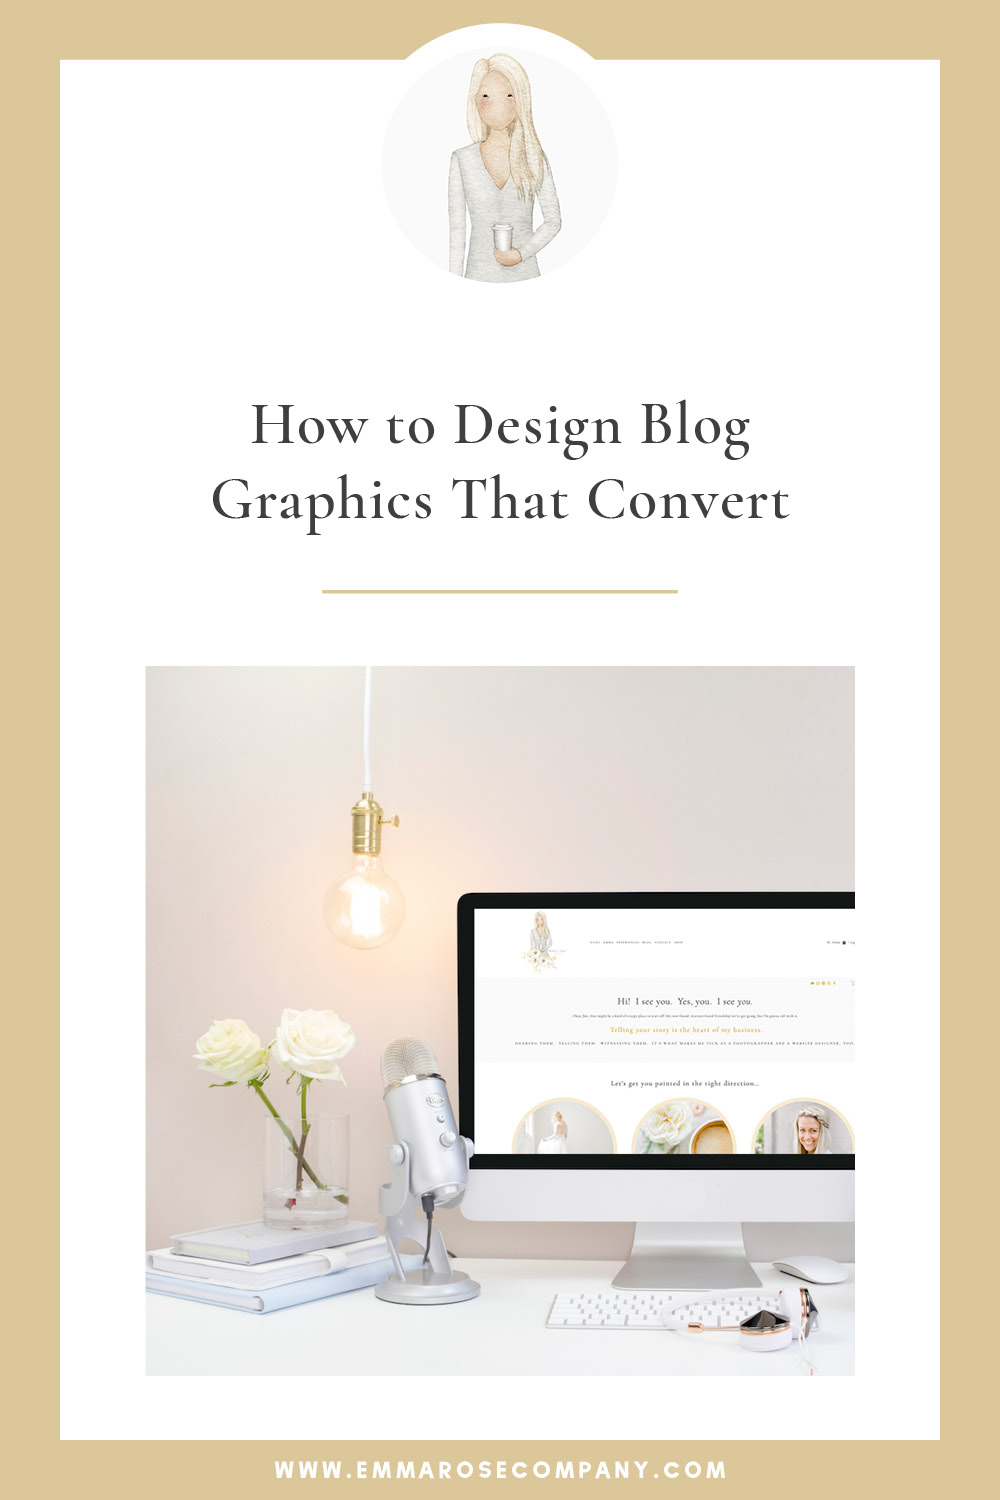 How to Create Beautiful Blog Graphics with Adobe Illustrator | Emma Rose Company Squarespace Website Designer | How to Create Blog Graphics that Convert